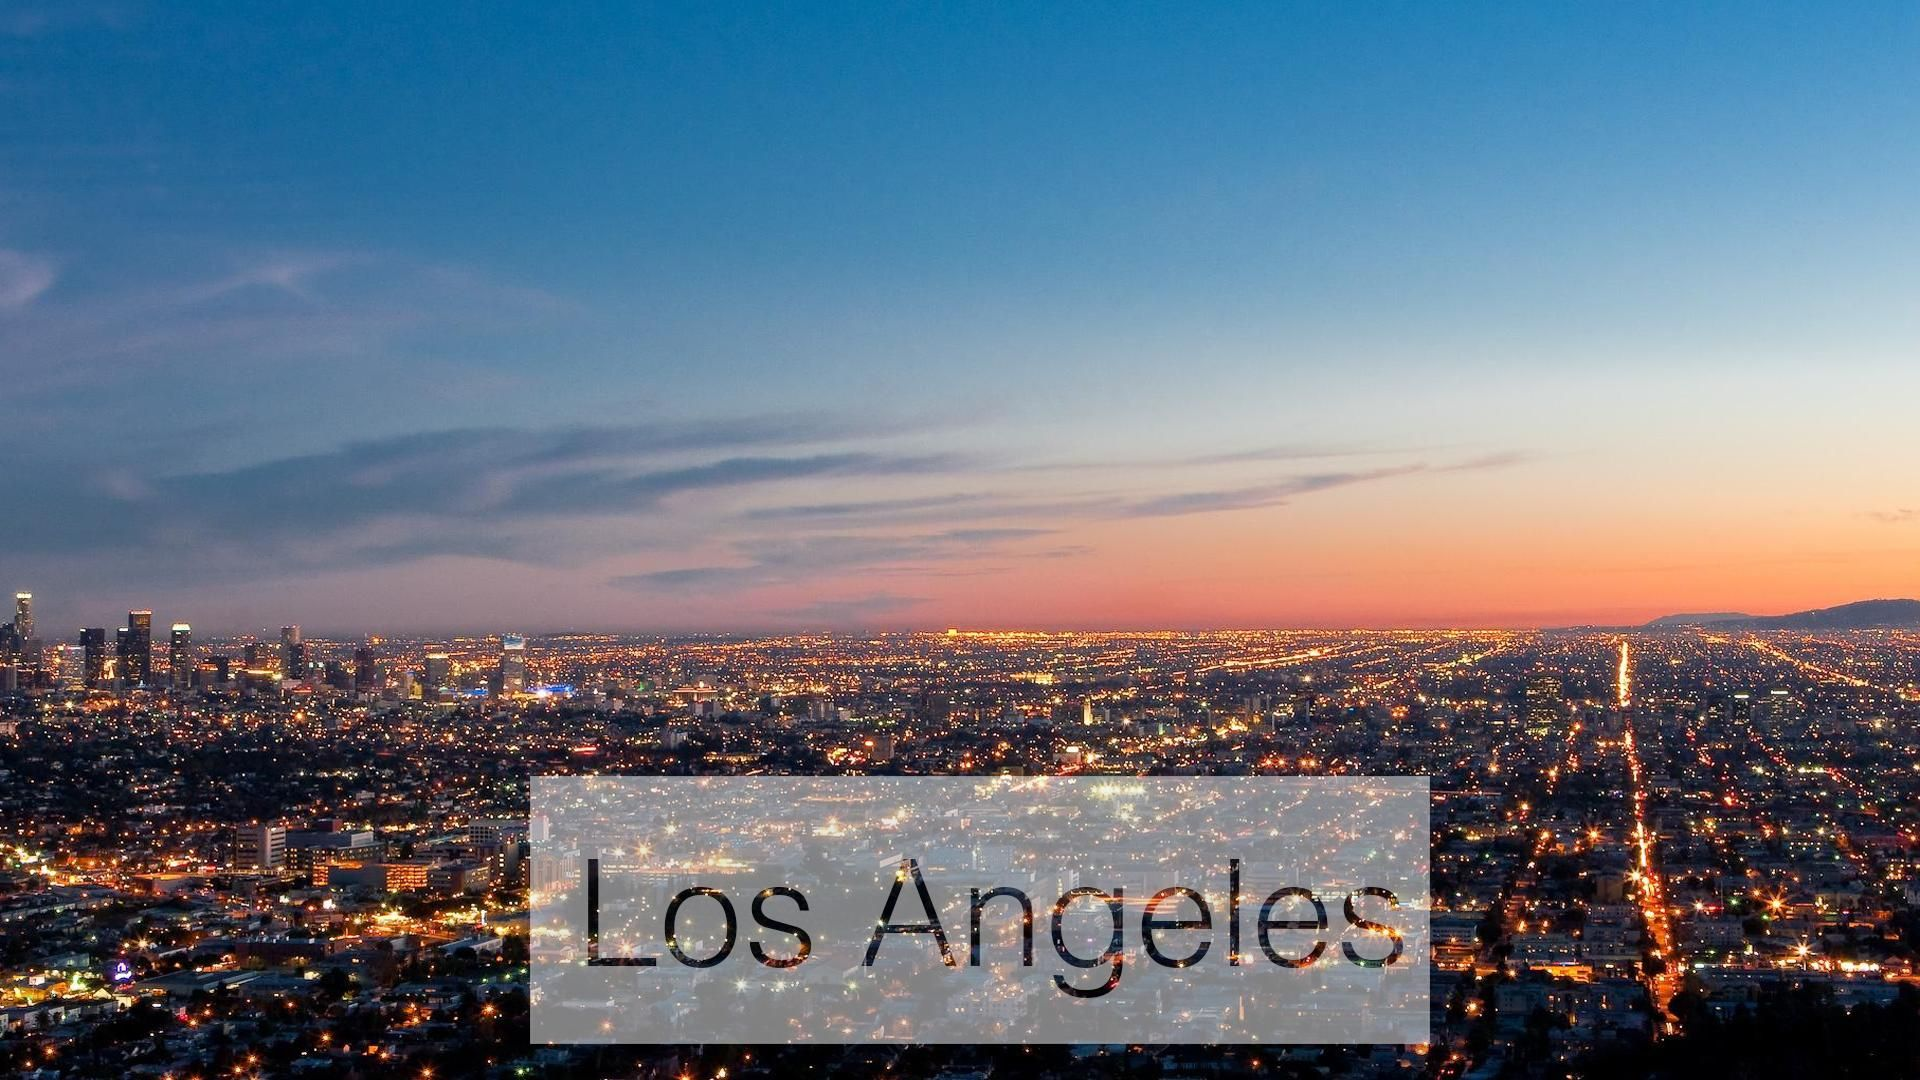 Los Angeles 1920x1080 R Wallpapers Los Angeles Wallpaper 4k Wallpaper For Mobile Los Angeles